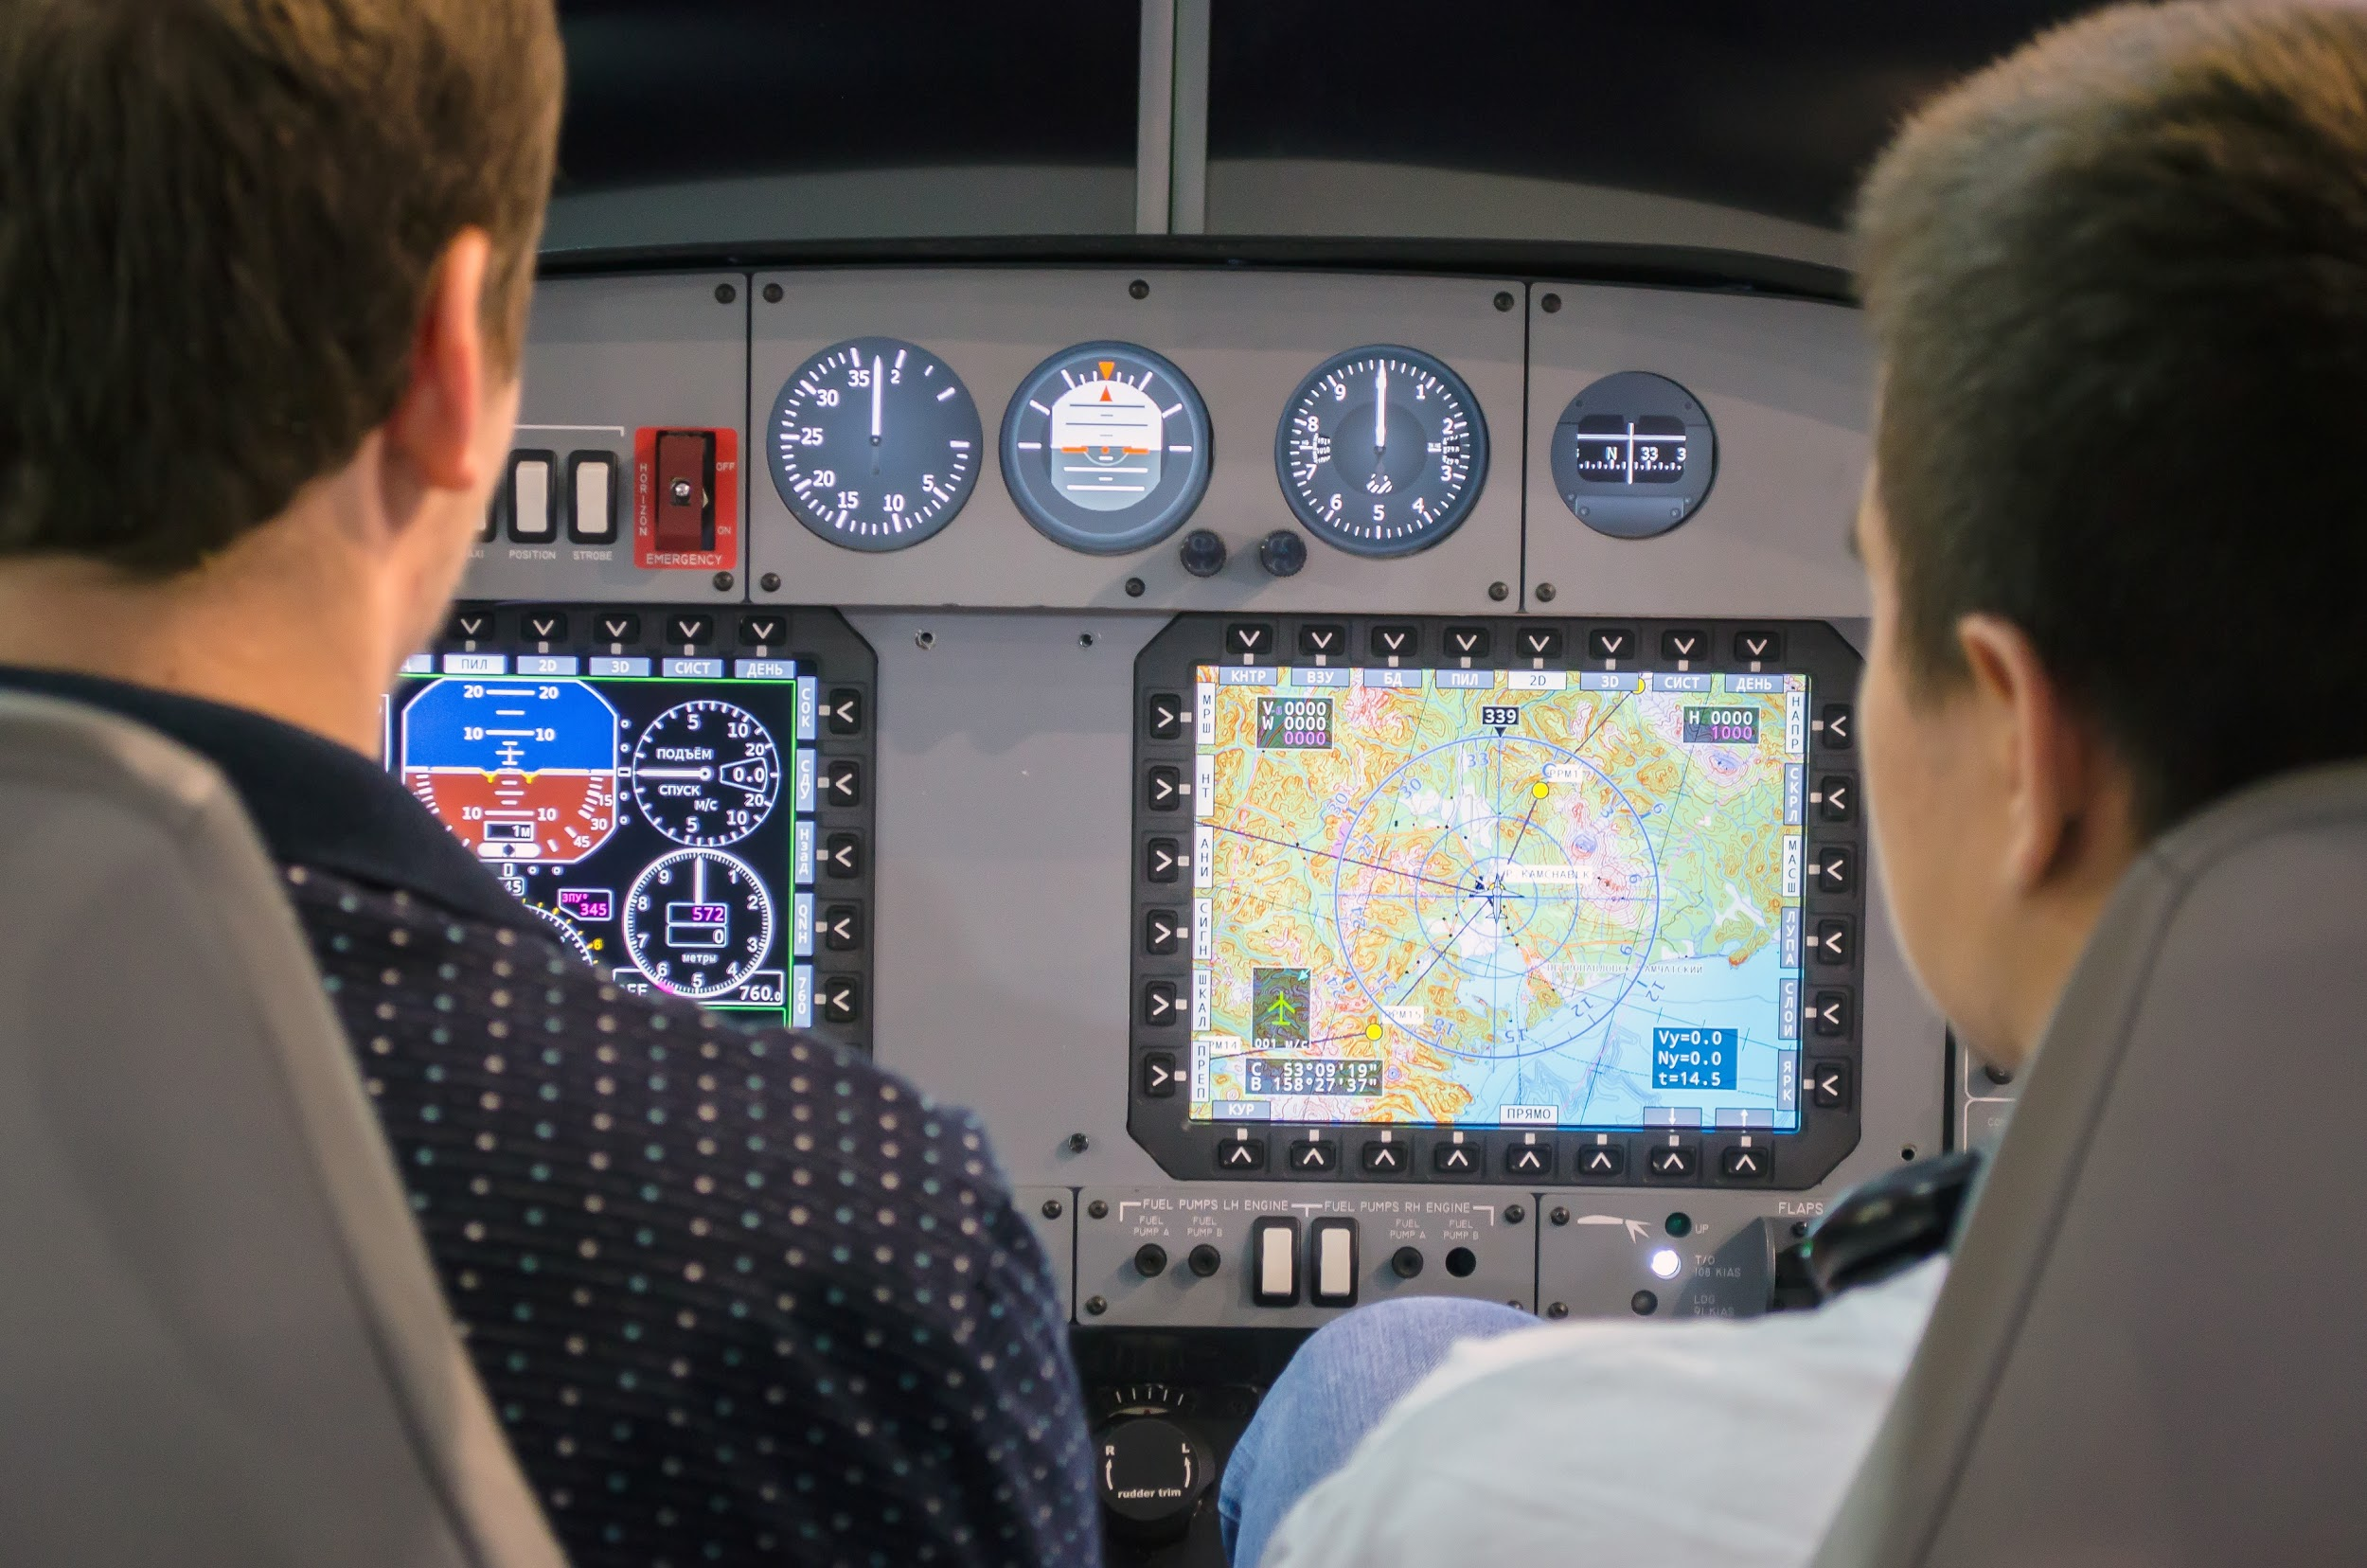 Simulator of a passenger aircraft with a cockpit and pilots